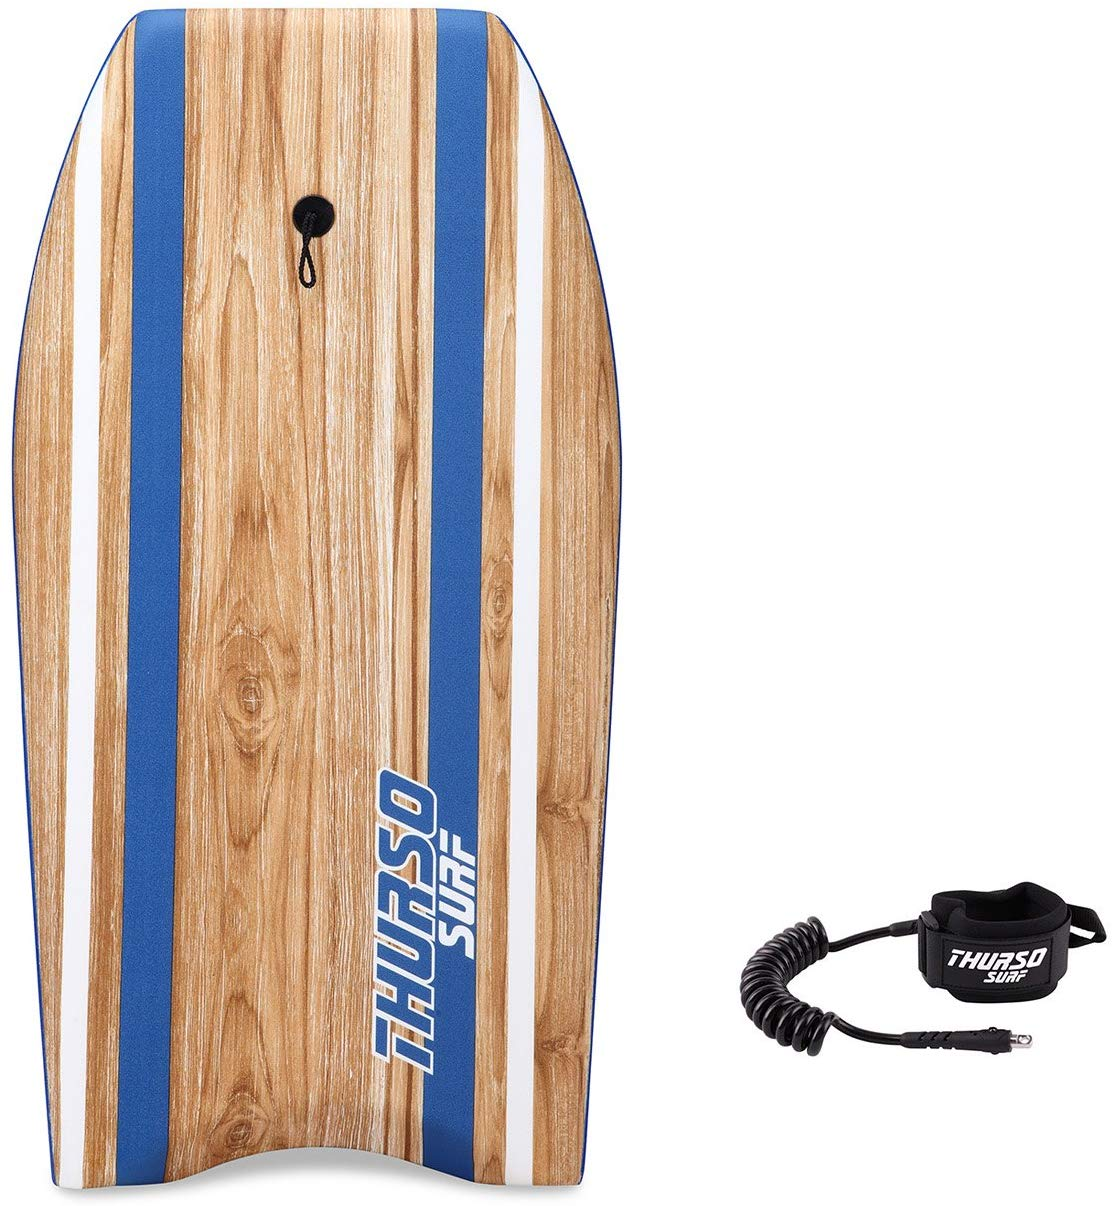 THURSO SURF Quill 42inch Bodyboard Package EPS Core IXPE Deck HDPE Slick Bottom Durable Lightweight Includes Double Stainless Steel Swivels Coiled Leash